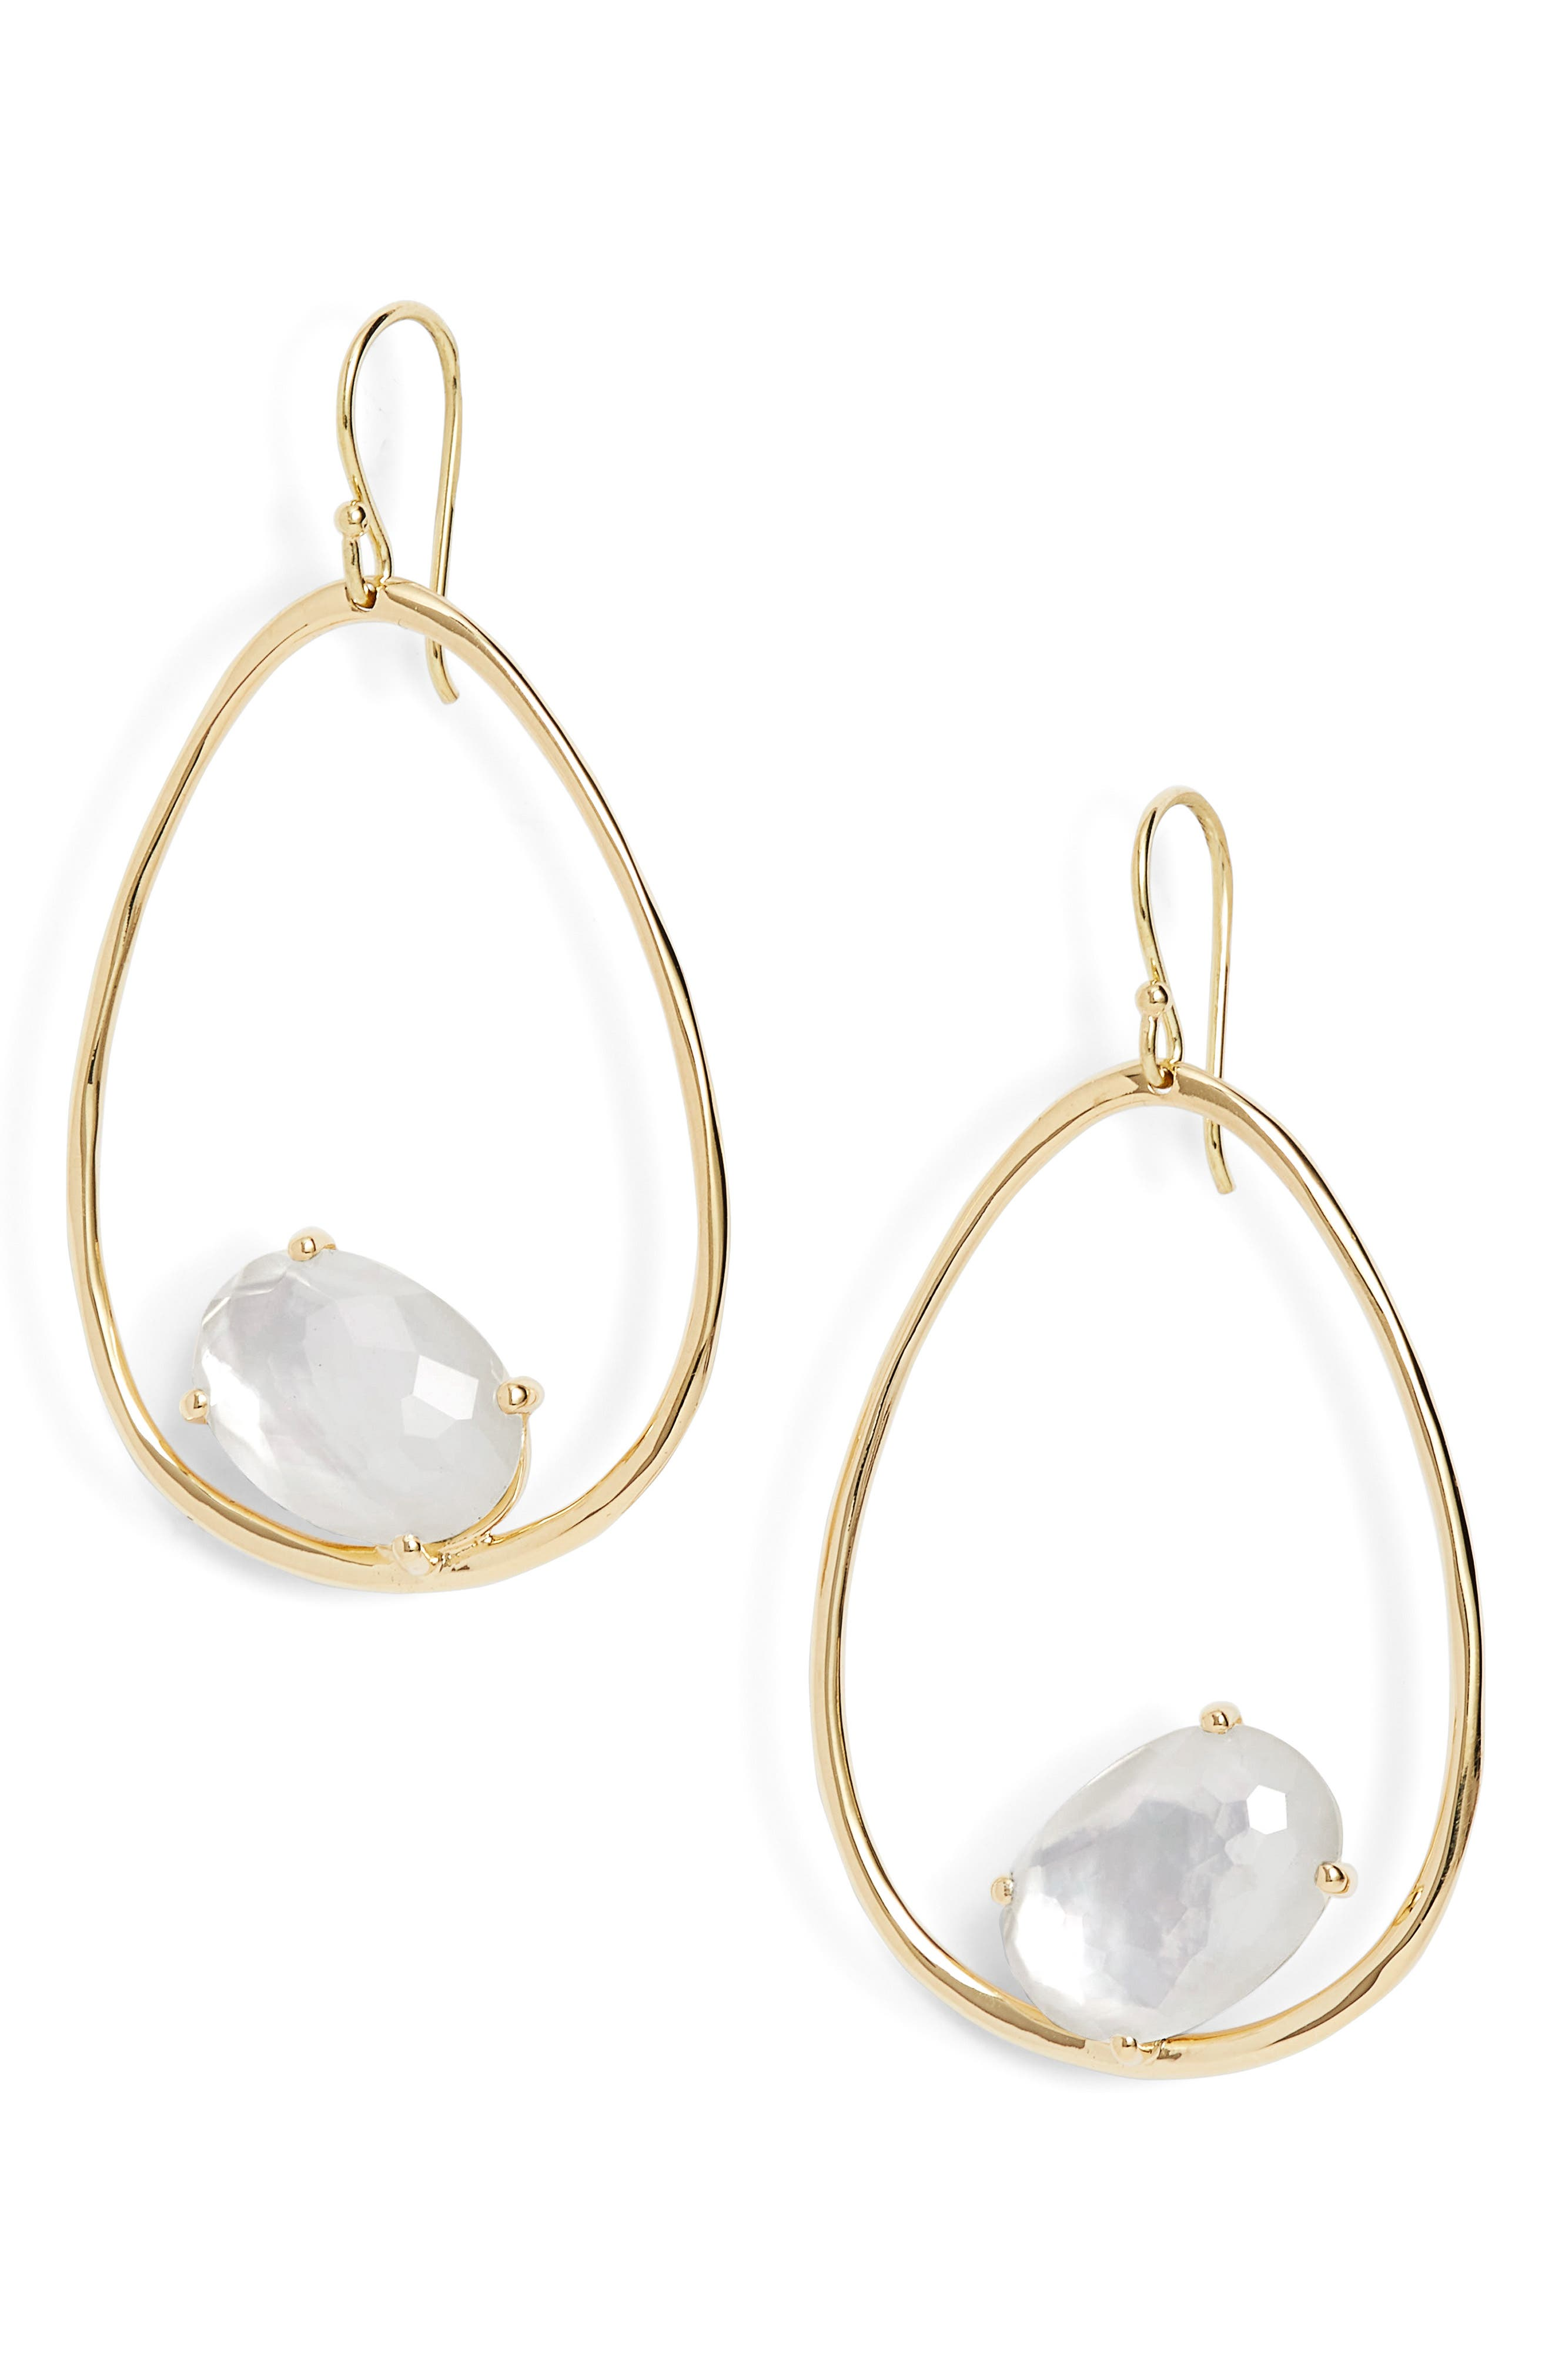 Image of Ippolita Rock Candy 18K Gold Large Drop Earrings